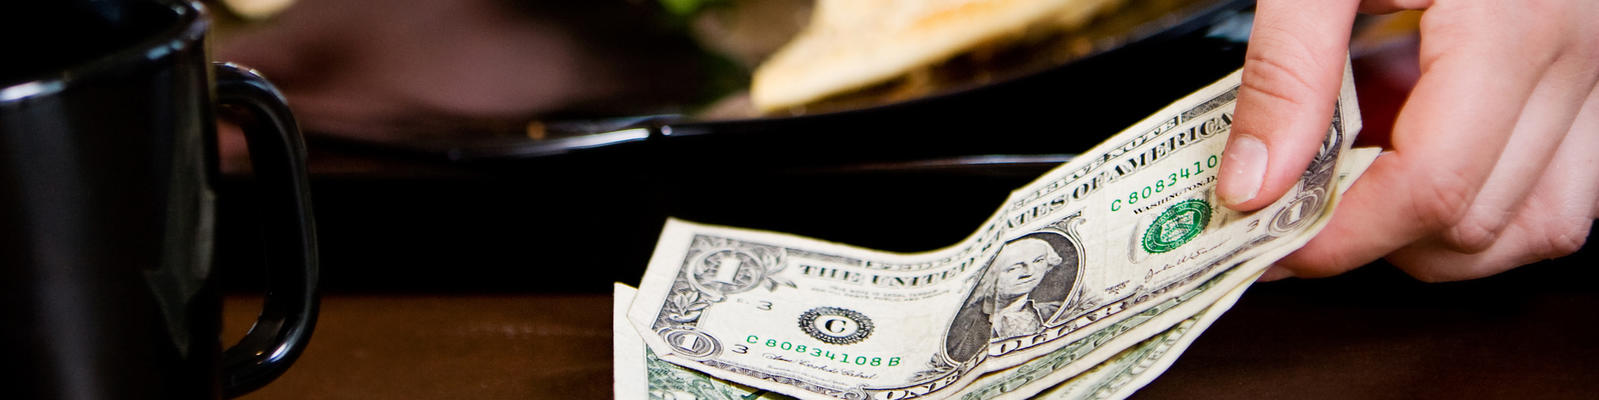 The Truth About Gratuities (Photo: Sean Locke Photography/Shutterstock)